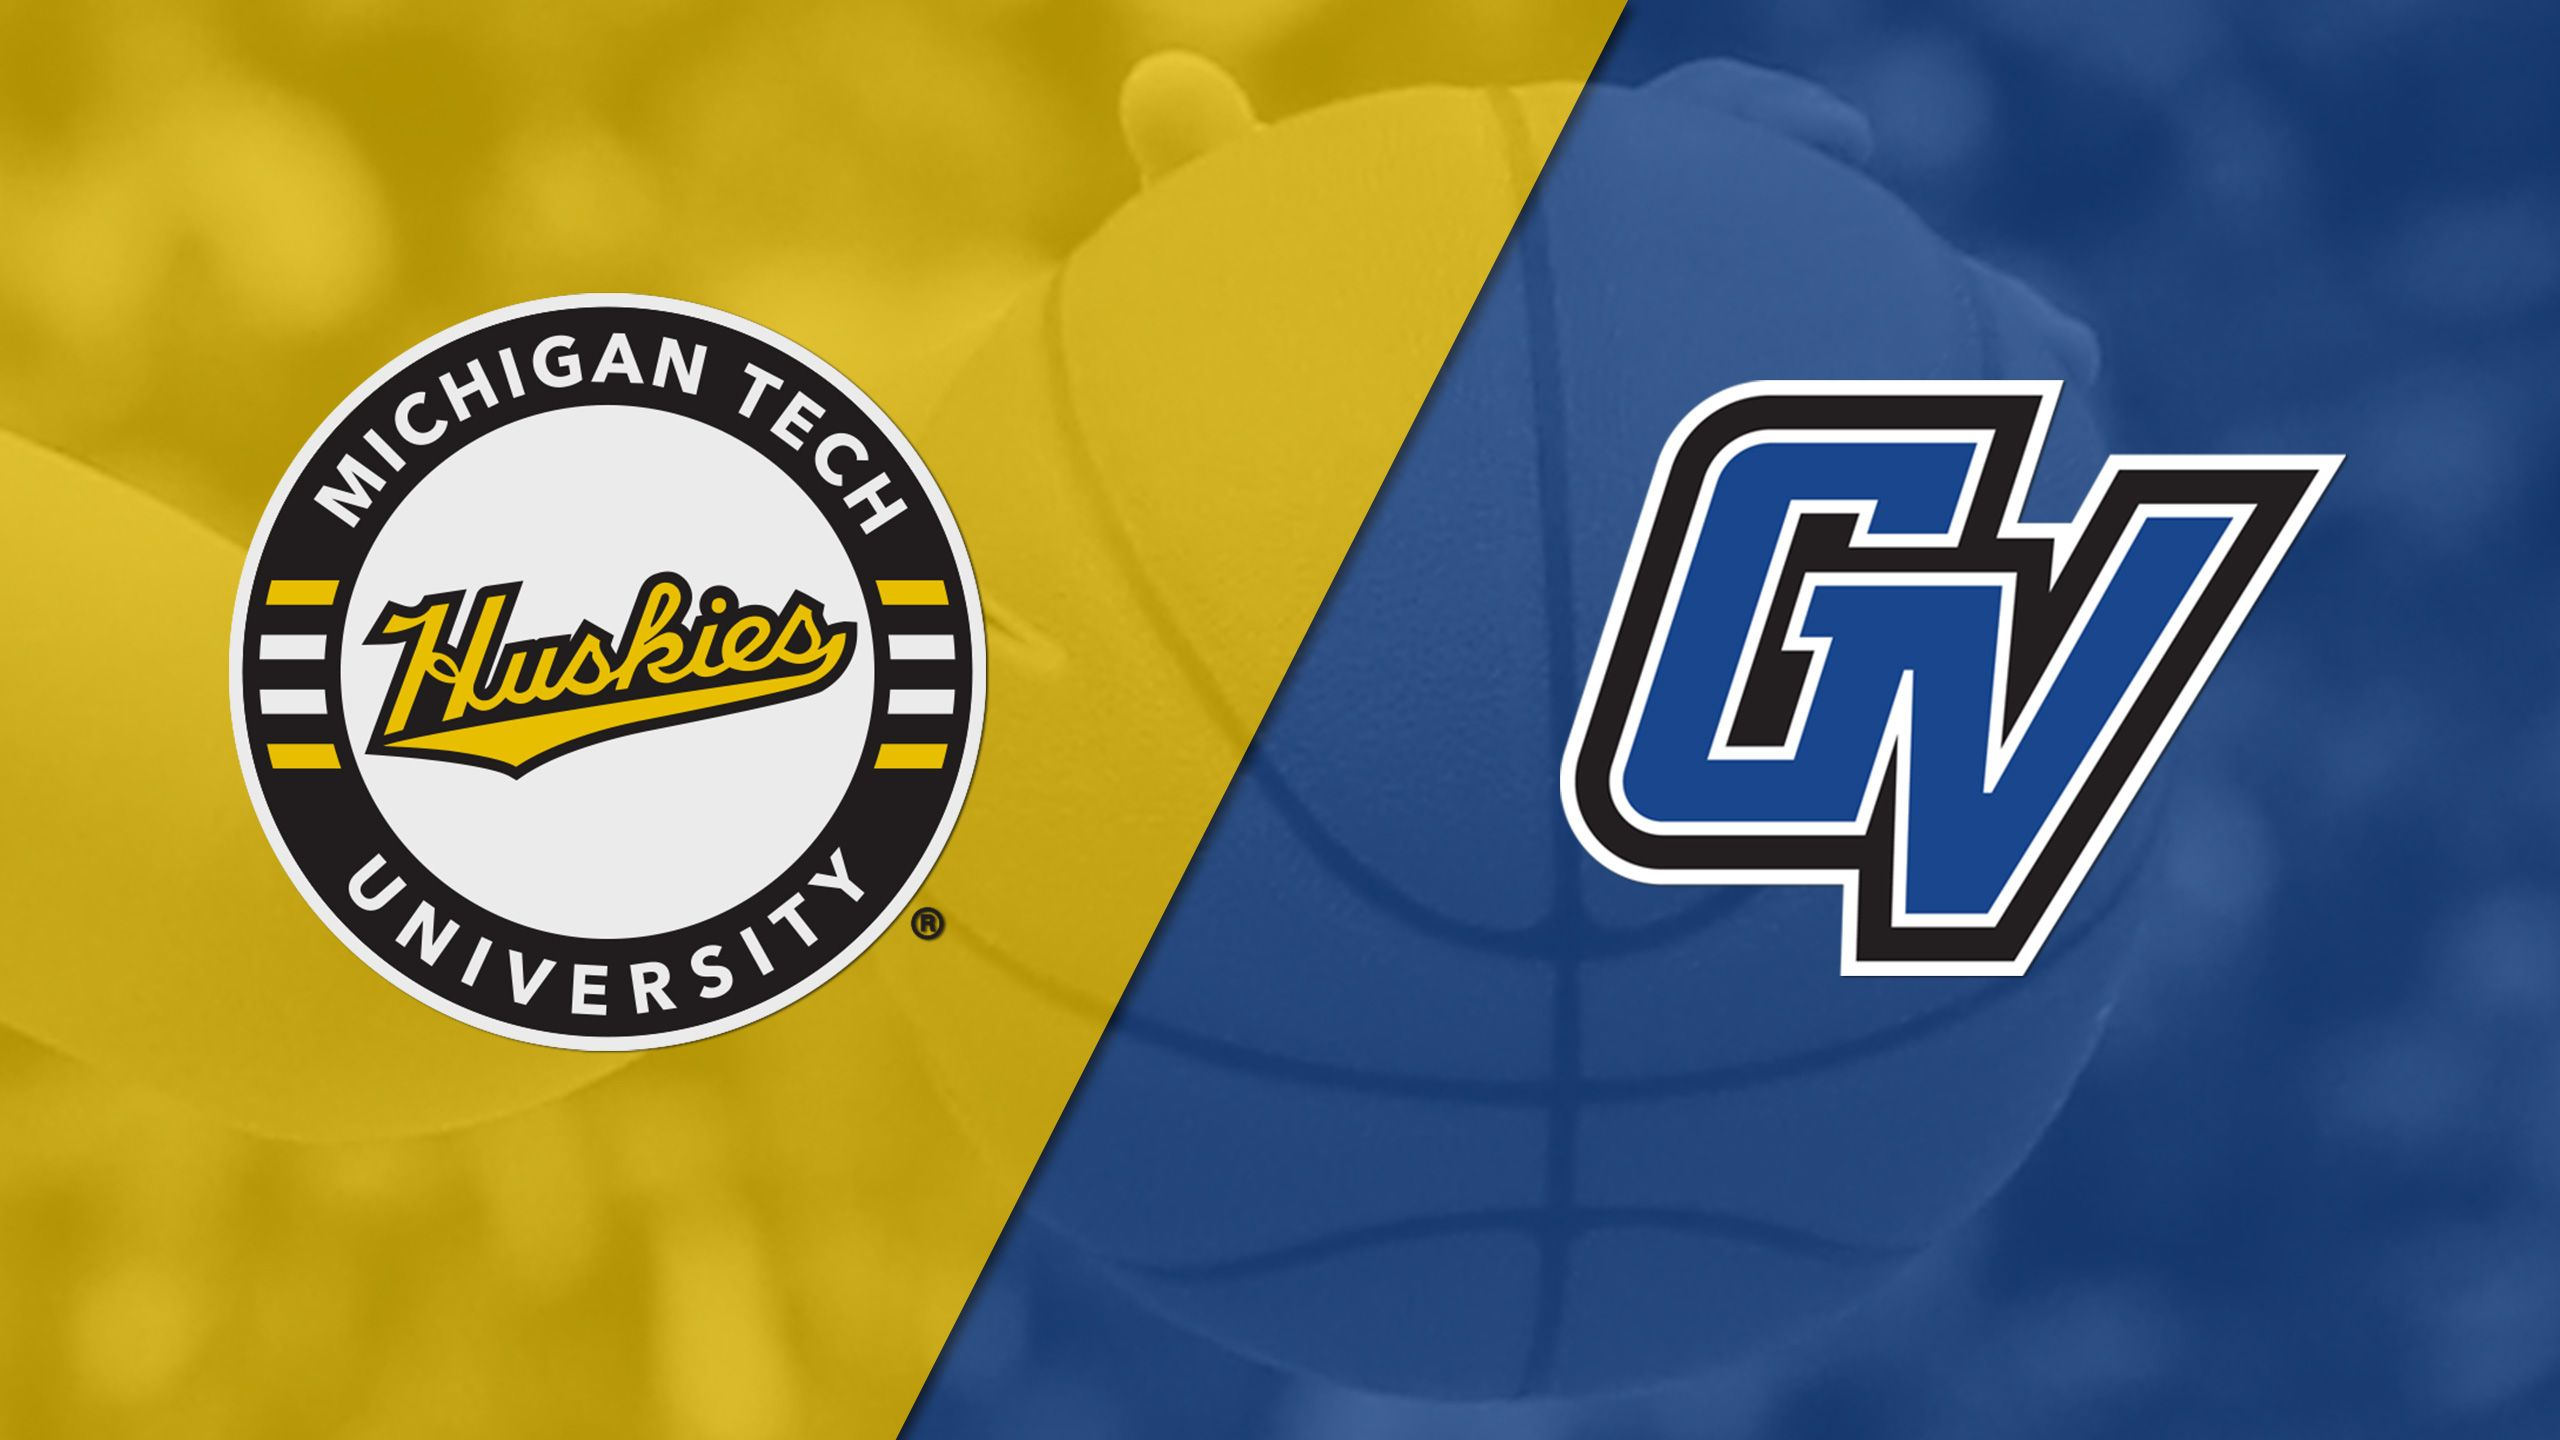 Michigan Tech vs. Grand Valley State (W Basketball)